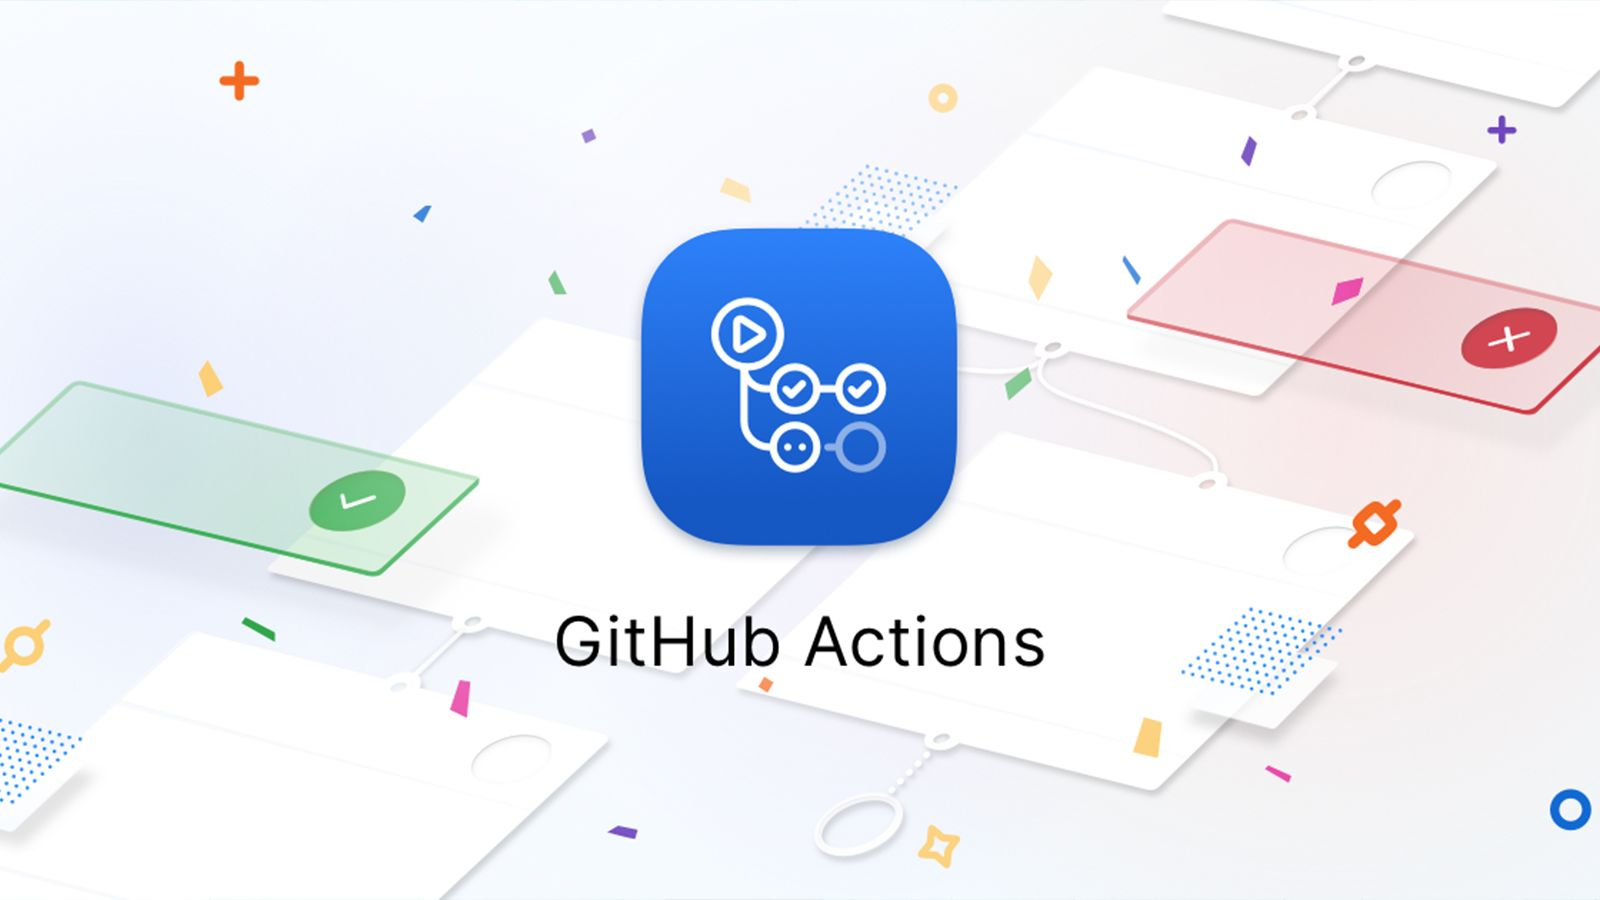 CI/CD with GitHub Actions